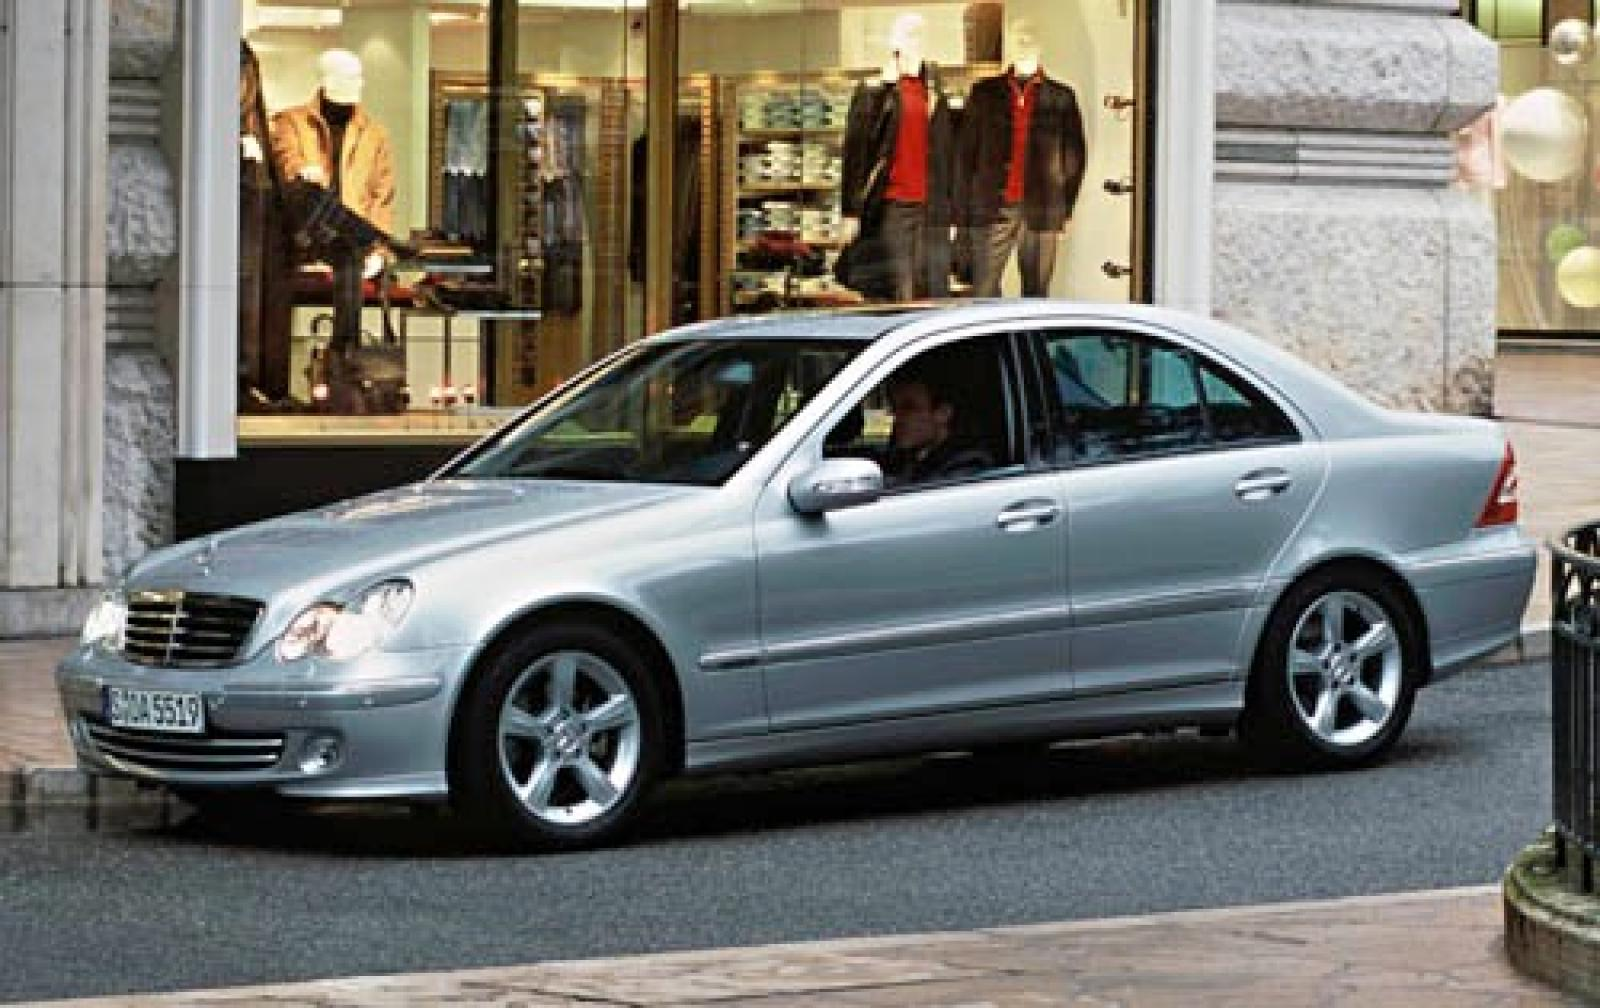 2005 mercedes benz c class information and photos zombiedrive. Black Bedroom Furniture Sets. Home Design Ideas